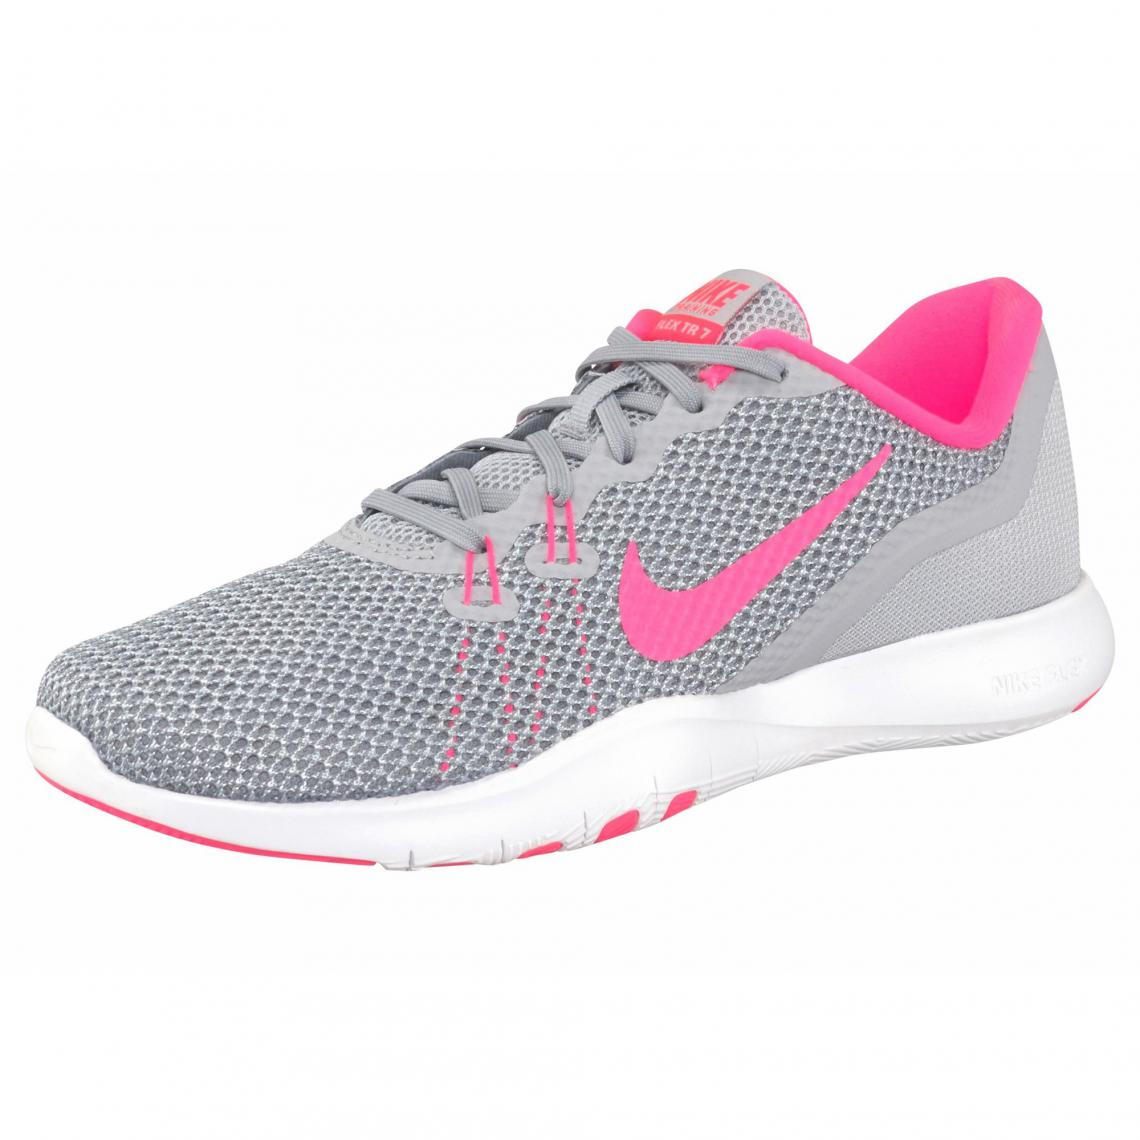 best sneakers 52a84 5a28f Chaussures de running Flex Trainer 7 Nike pour femme - Gris - Rose Vif Nike  Femme